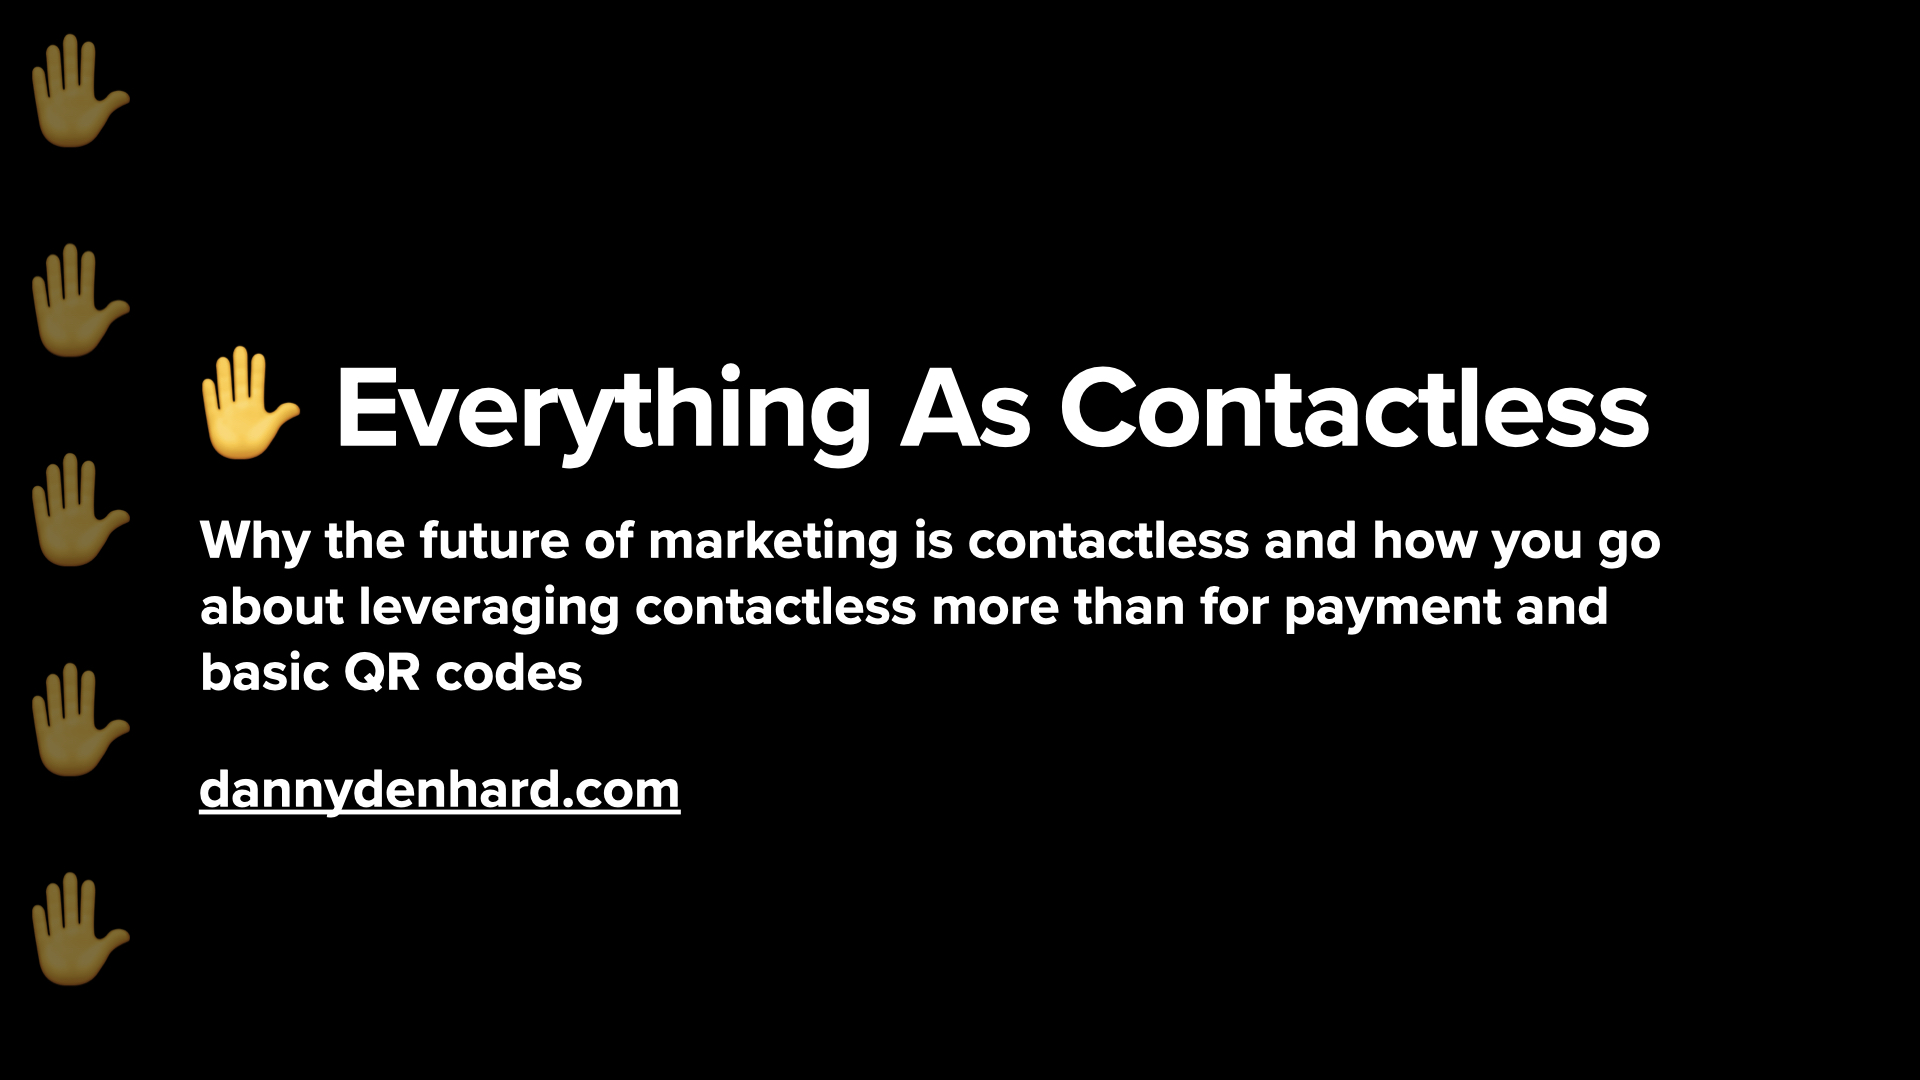 everything as contactless